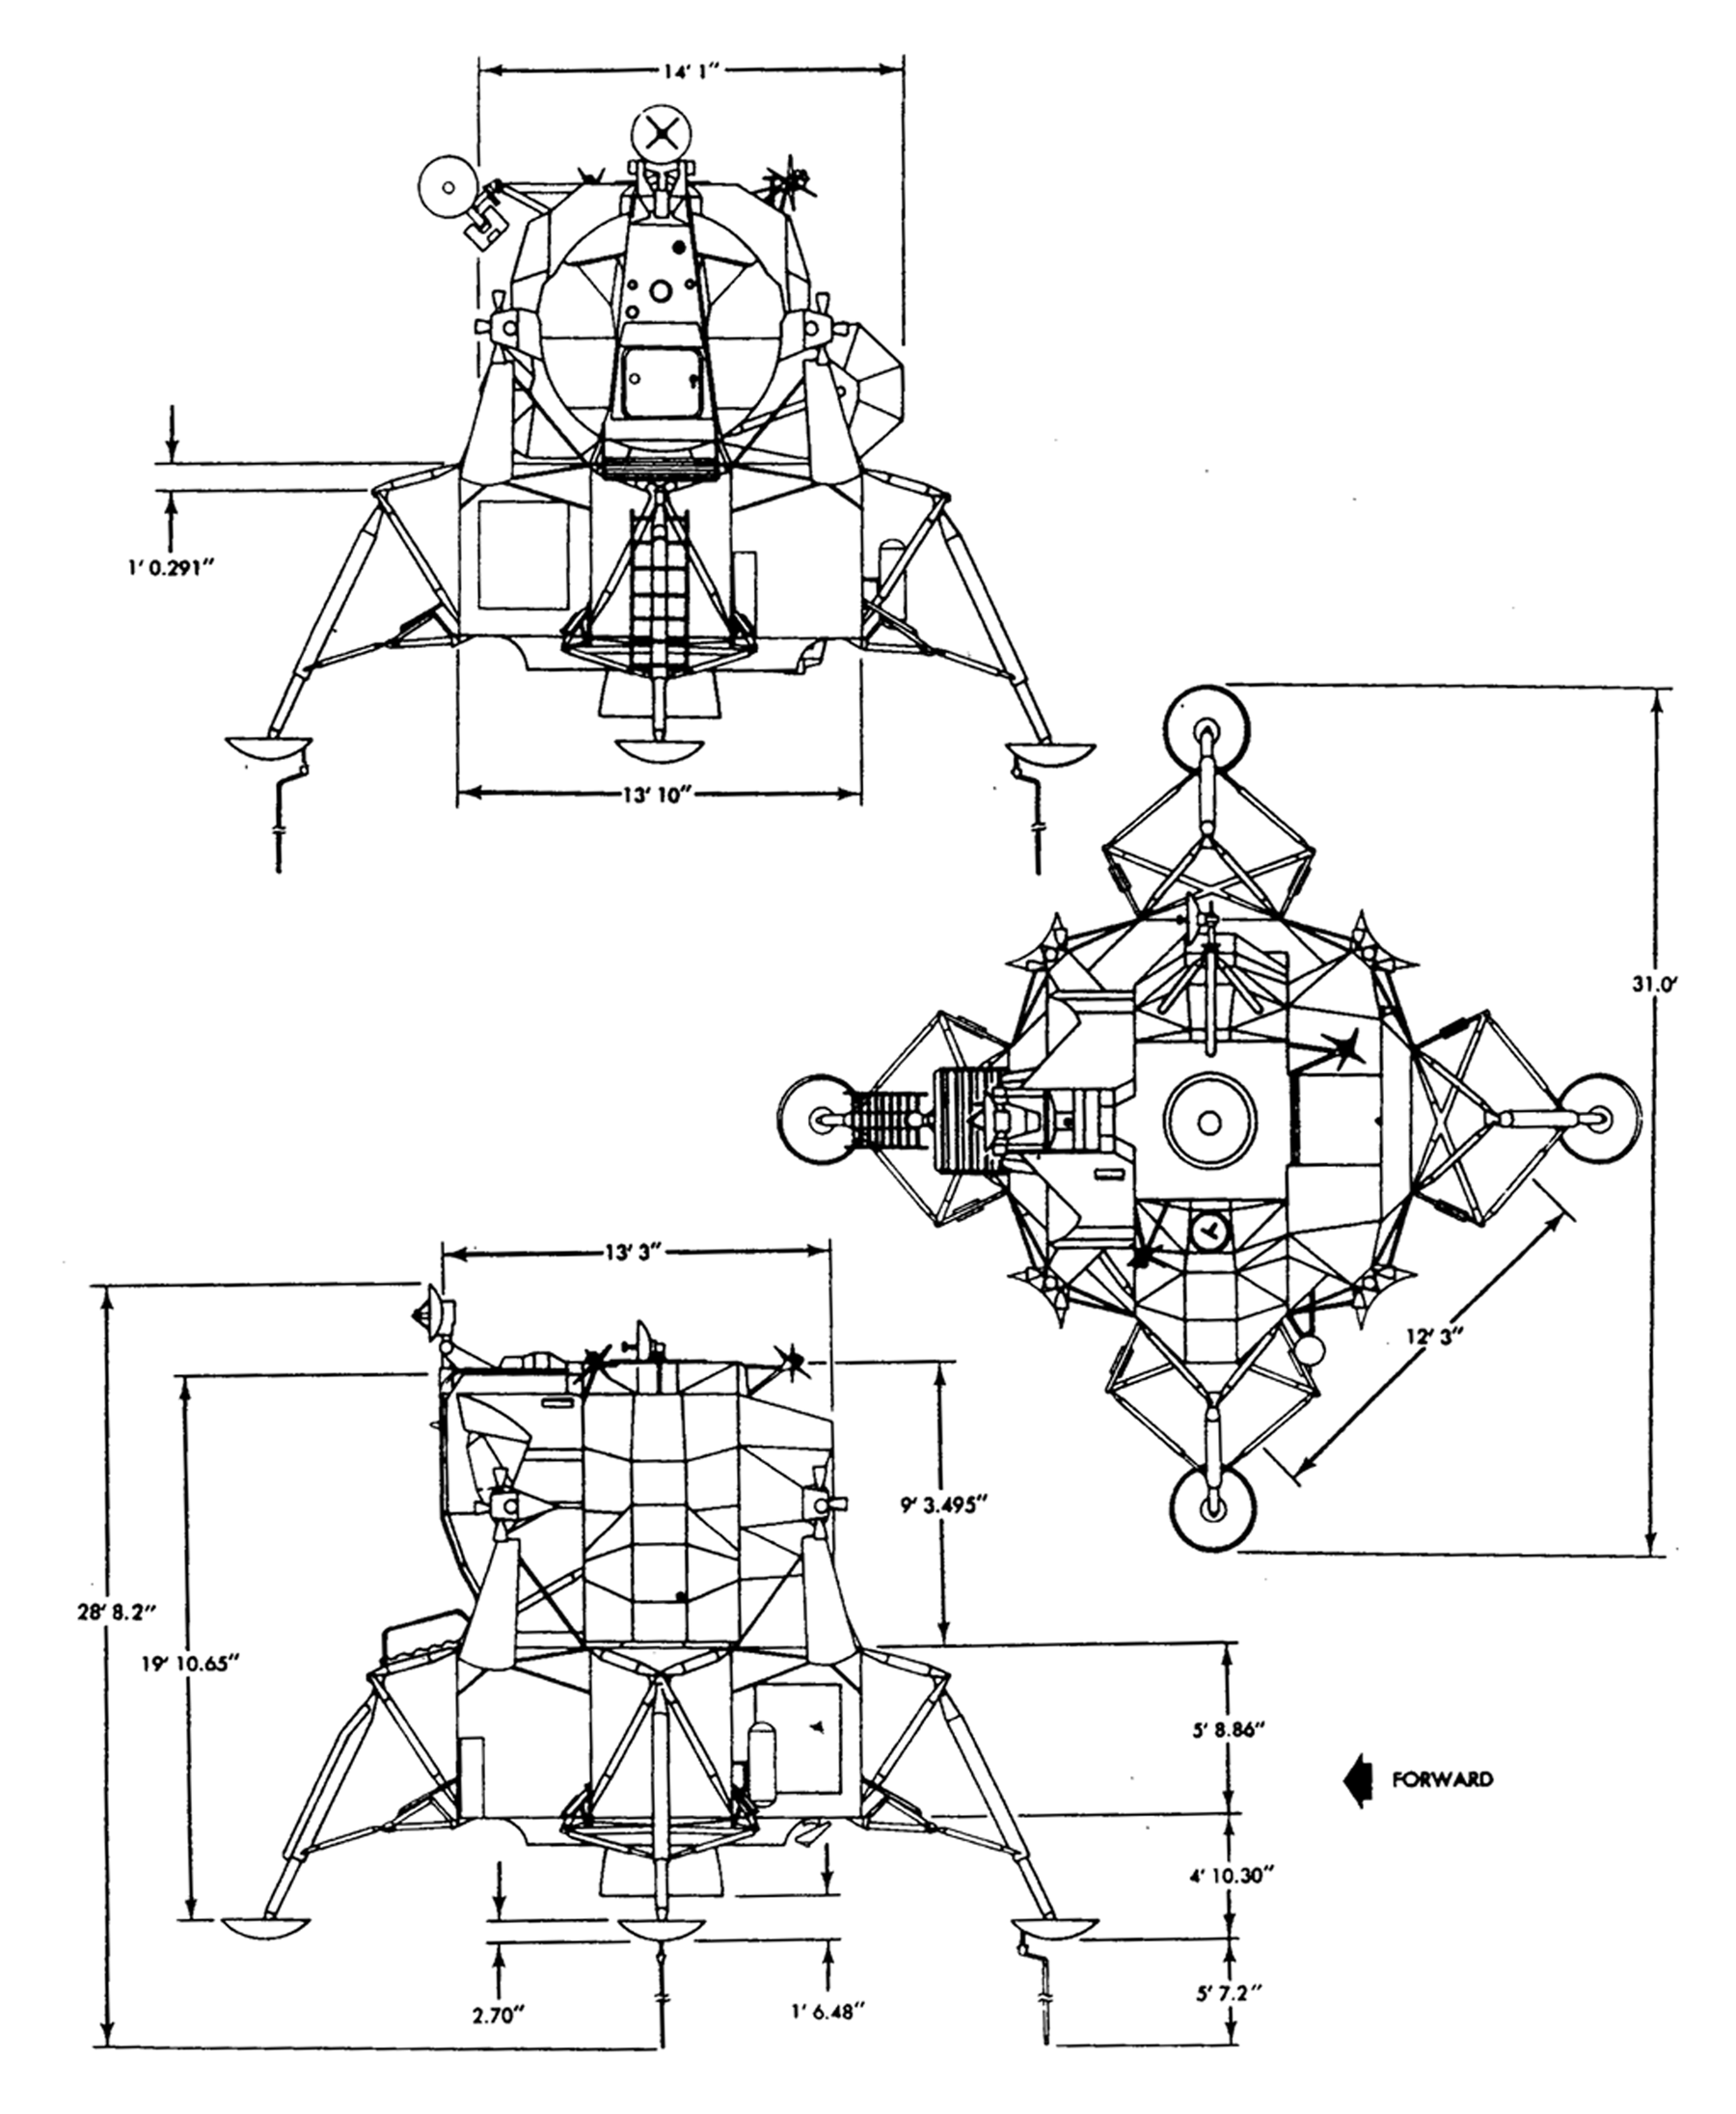 Apollo Lunar Module Diagram Page 4